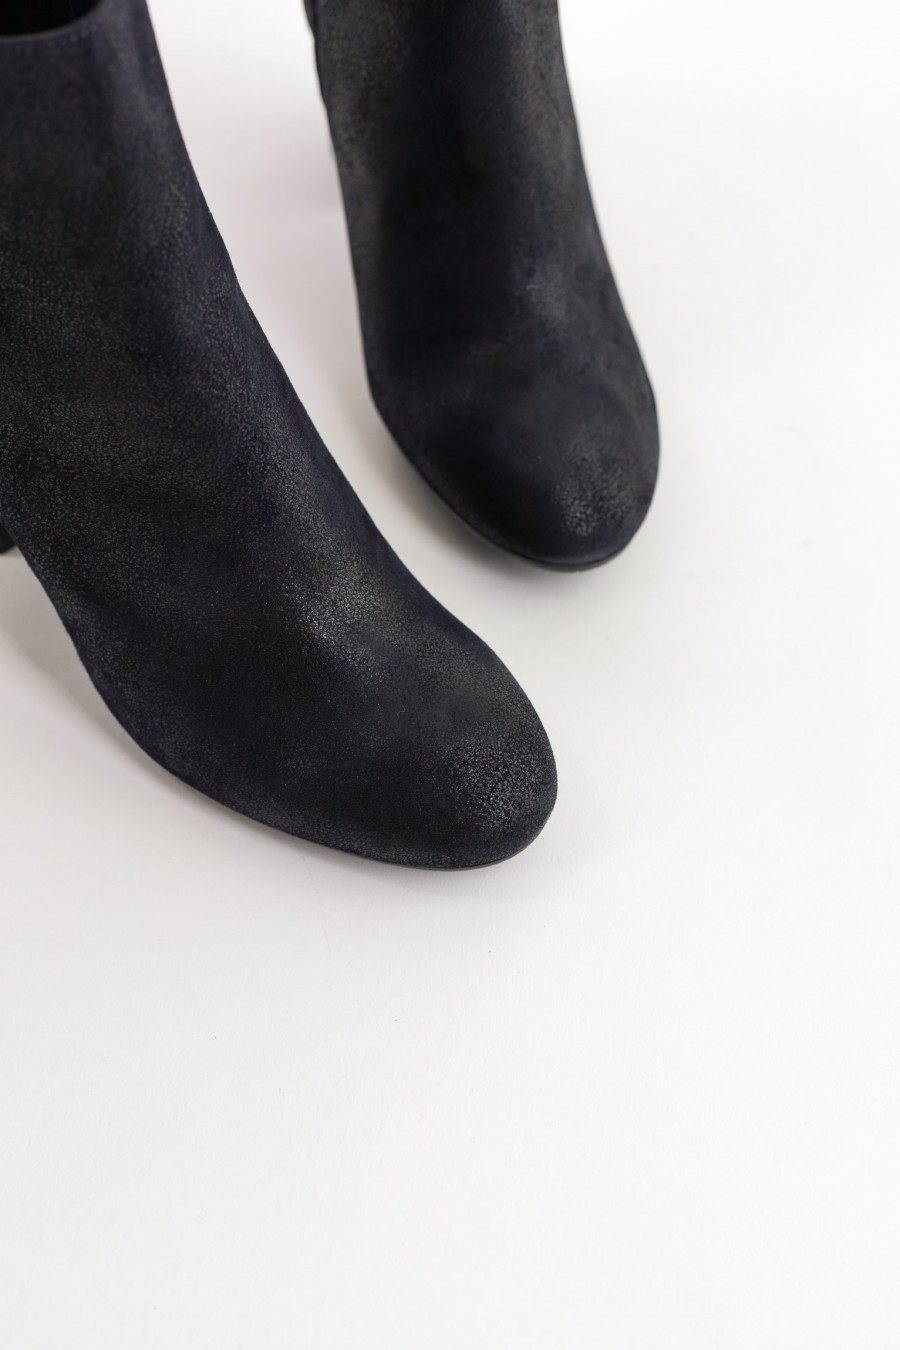 Blue leather ankle boots with rounded toe